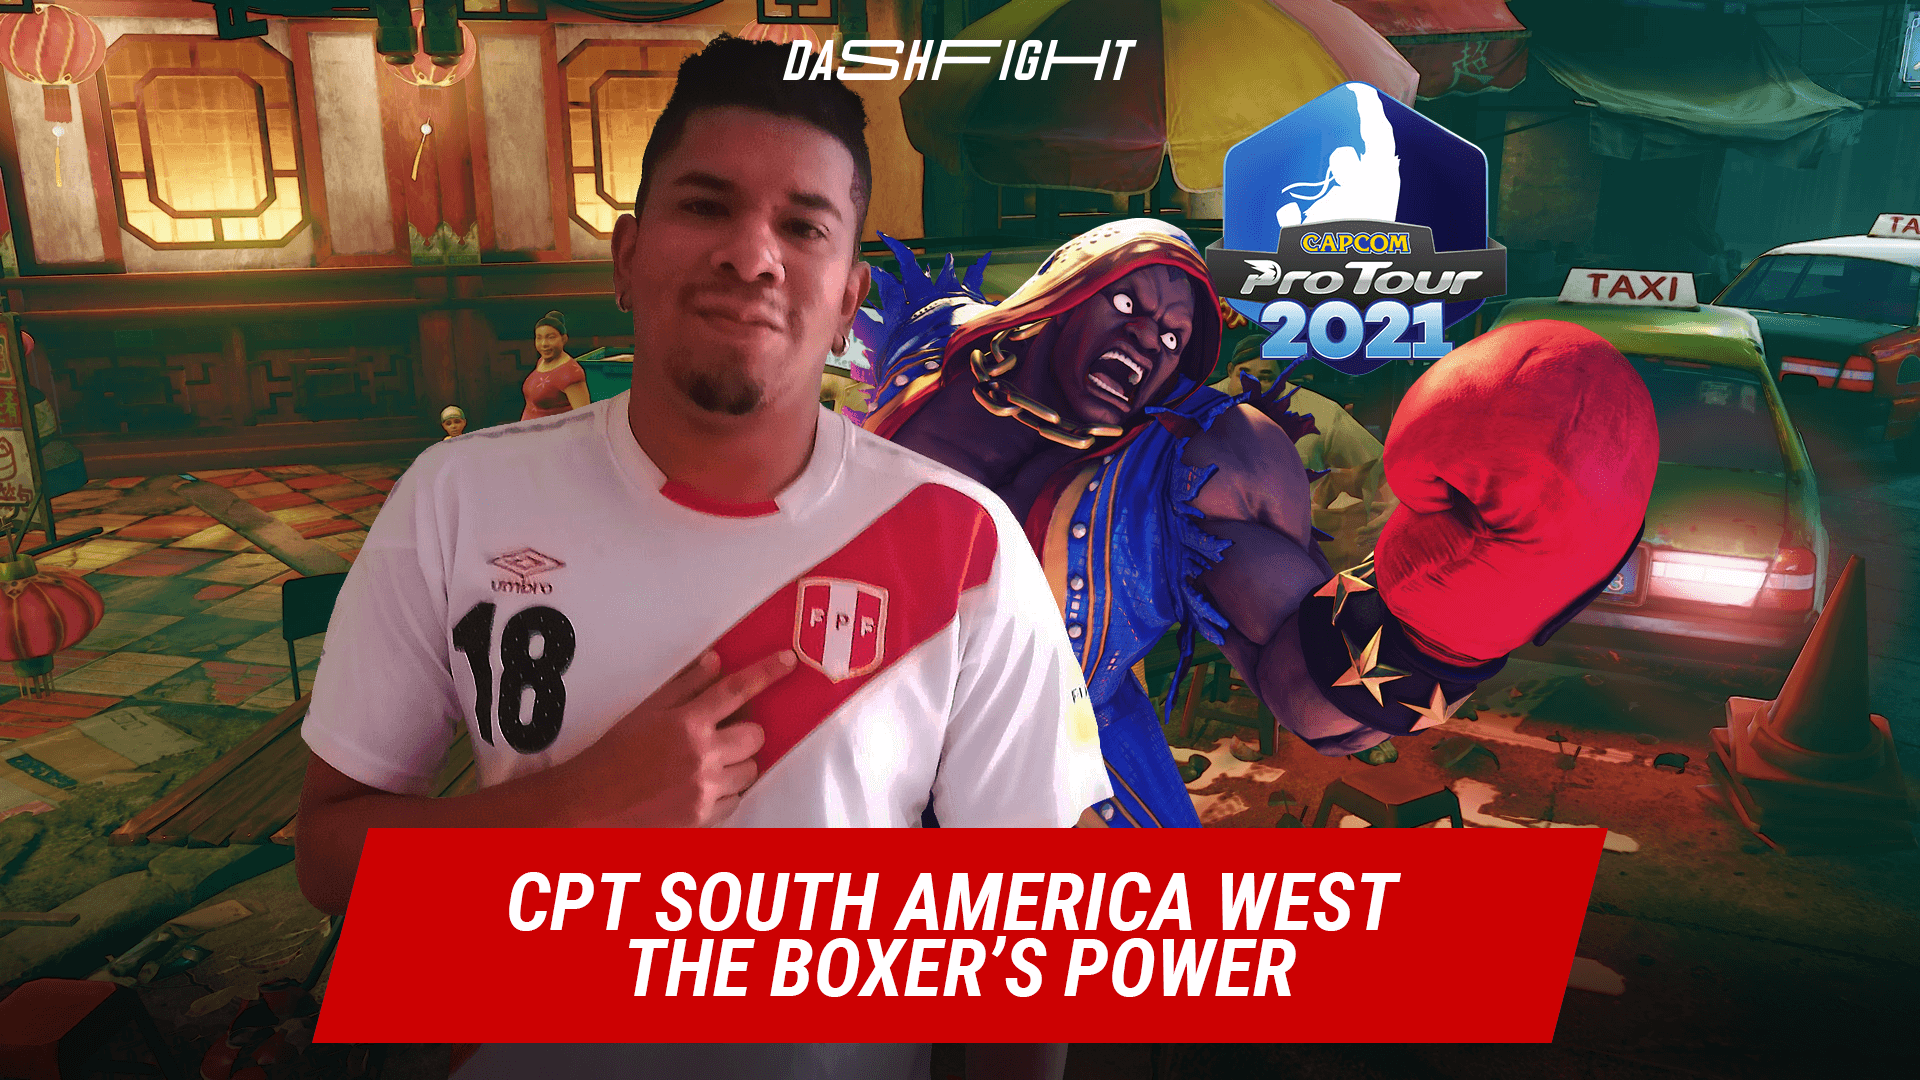 CPT South America West 1: The Boxer's Power